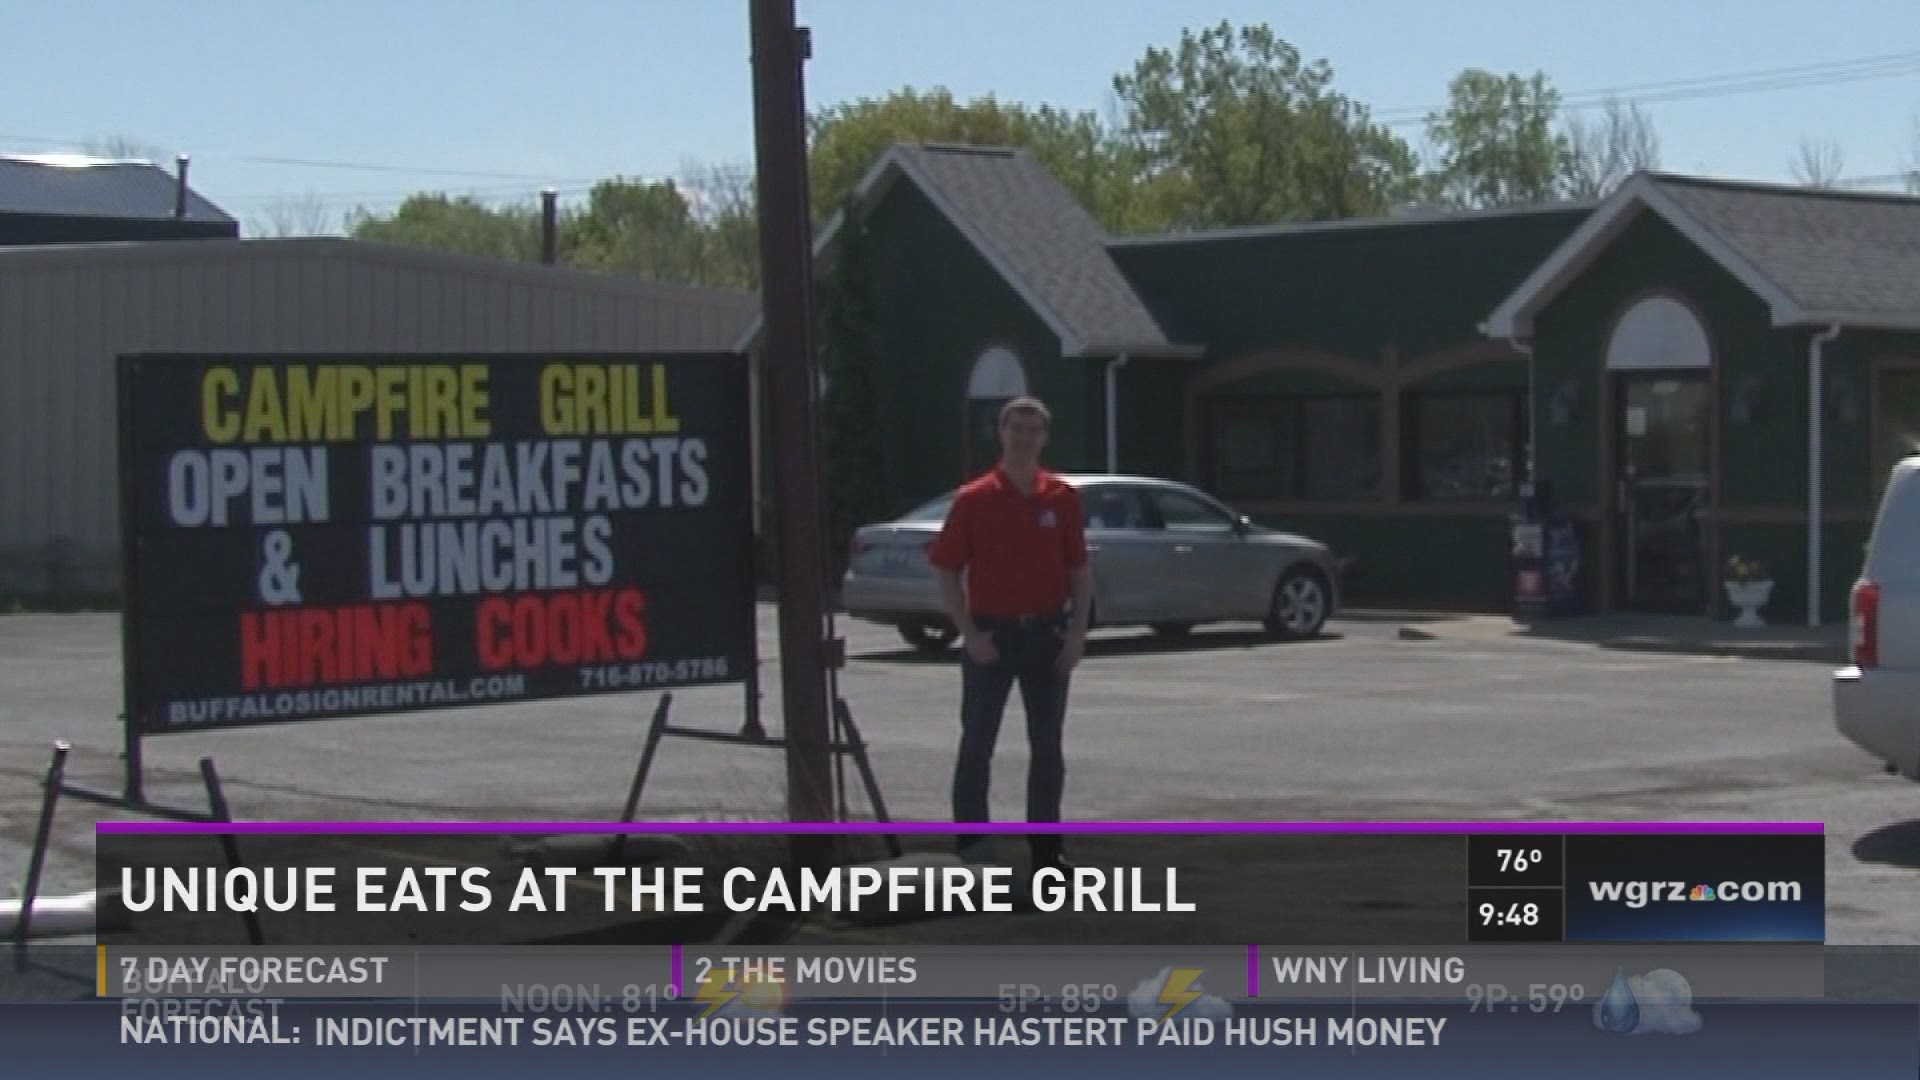 Campfire Grill Depew Eats at The Campfire Grill